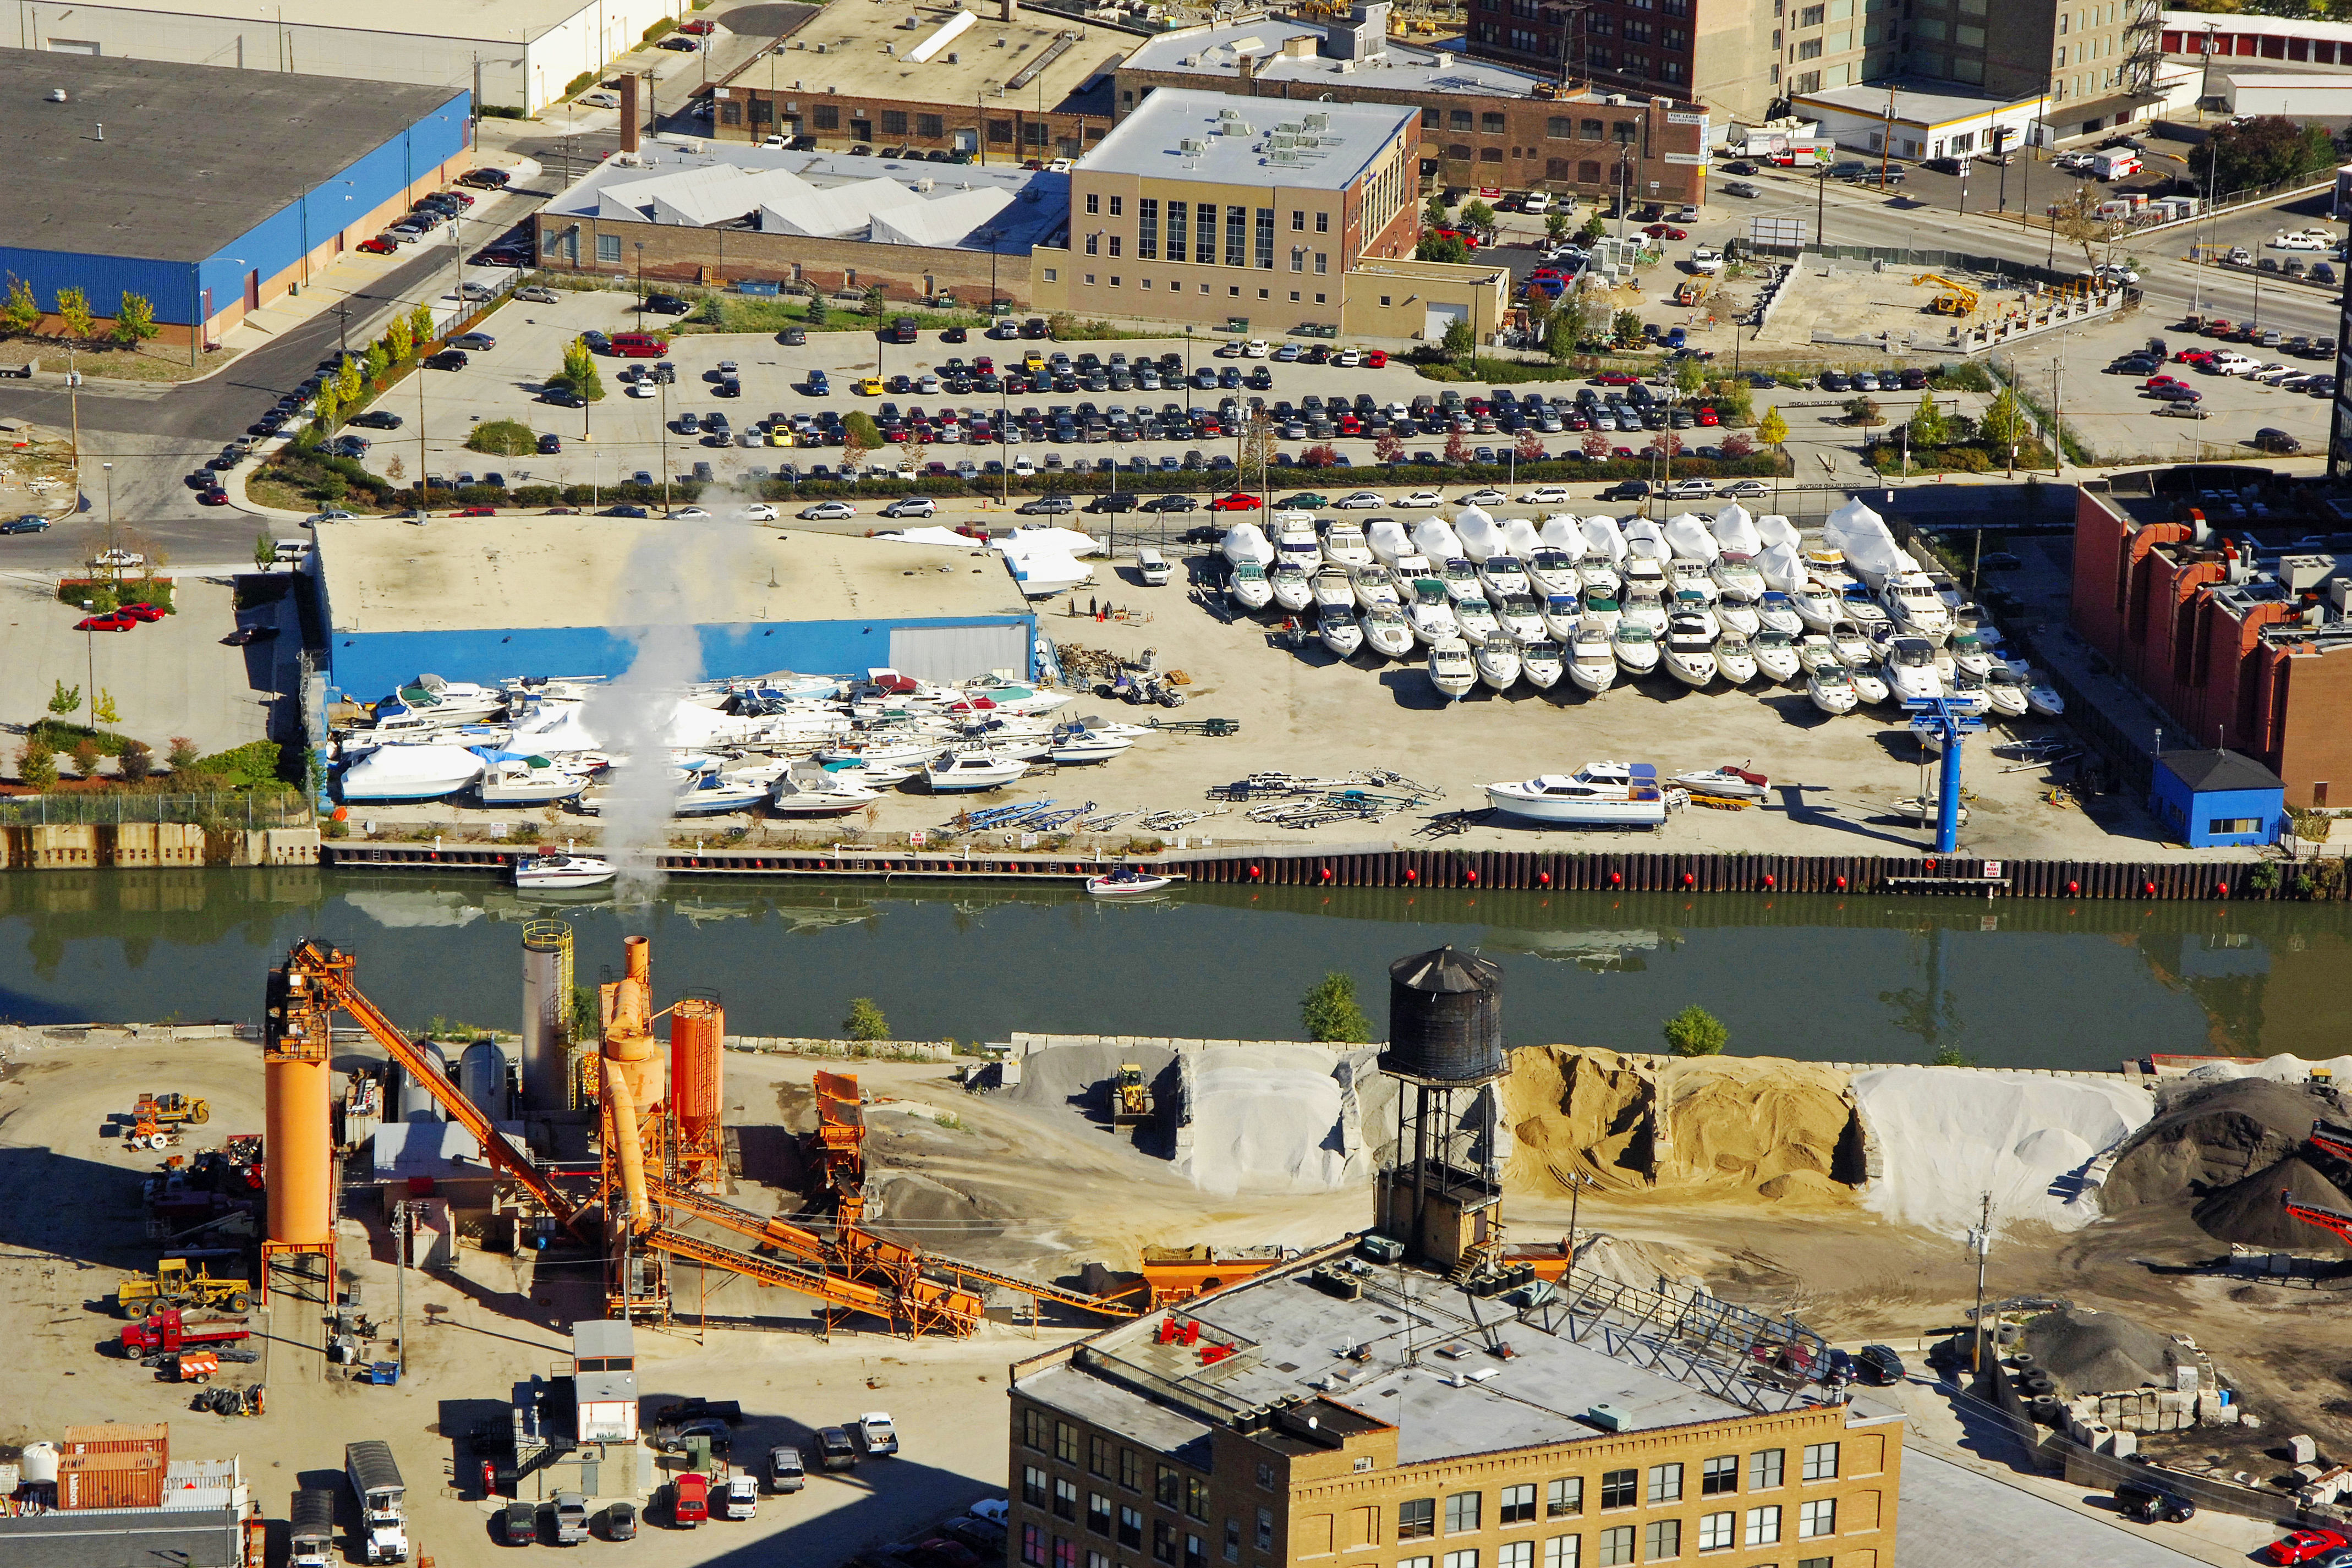 Aaa Boat Yard Amp Port Supply In Chicago Il United States